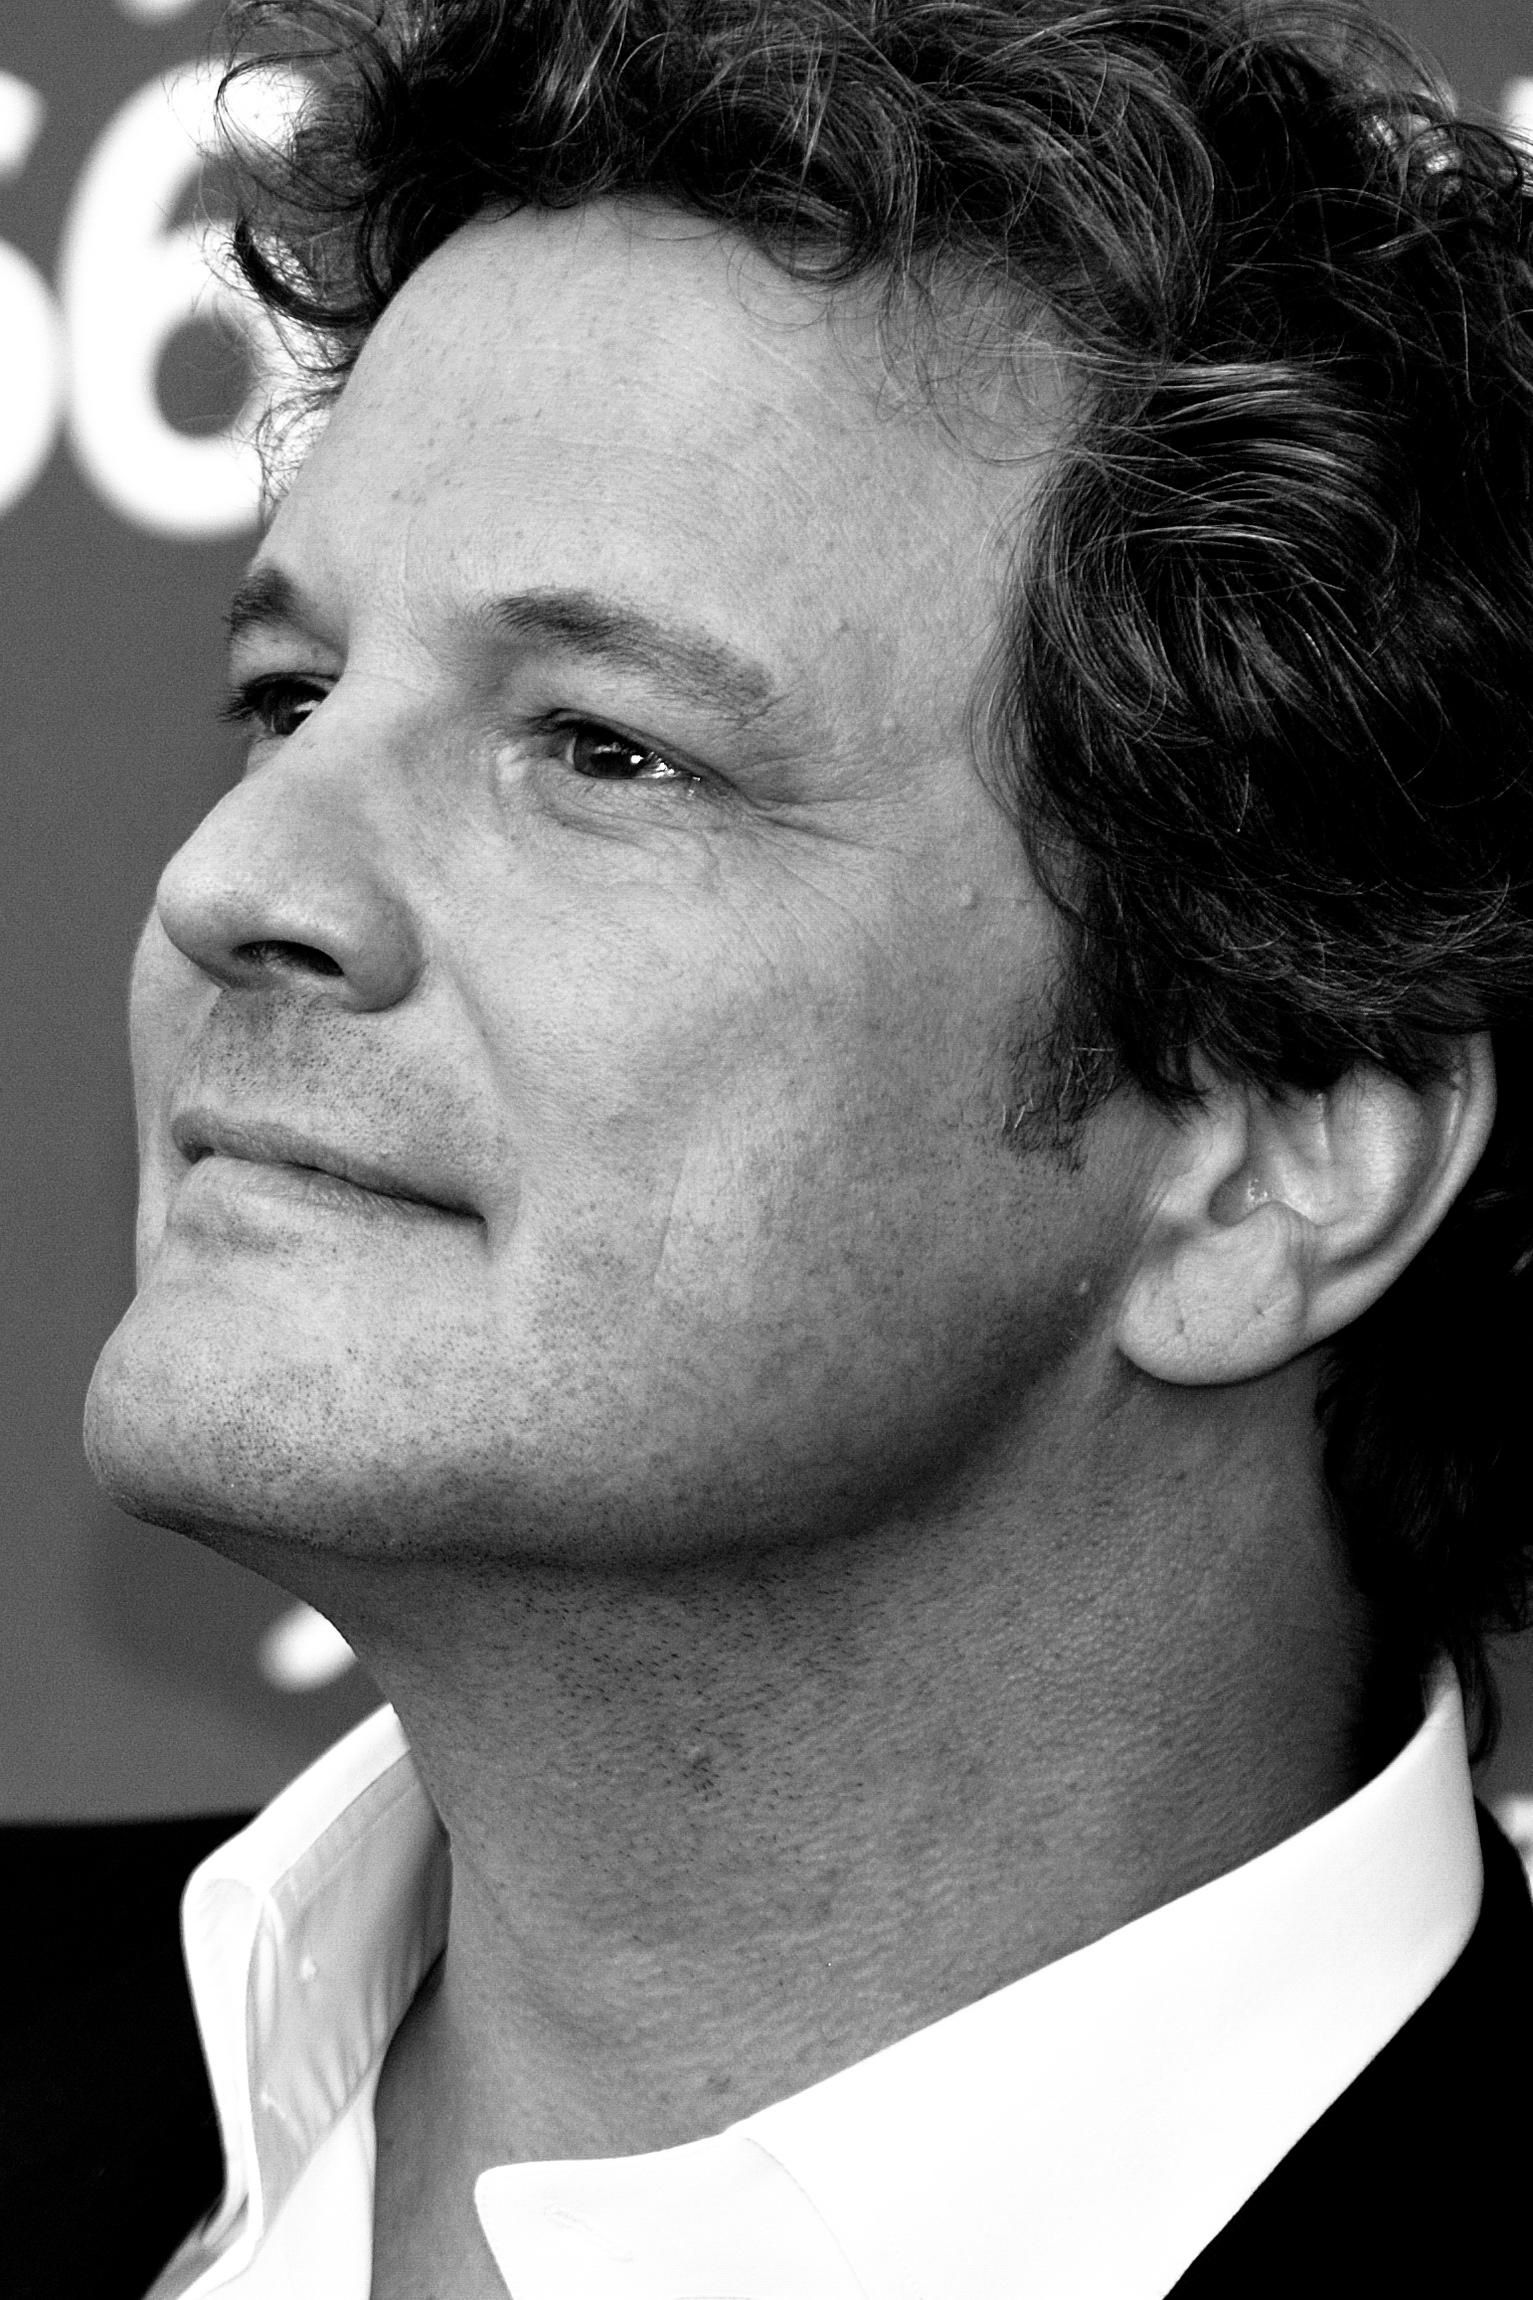 Colin Firth 10 September 1960 6' 2""